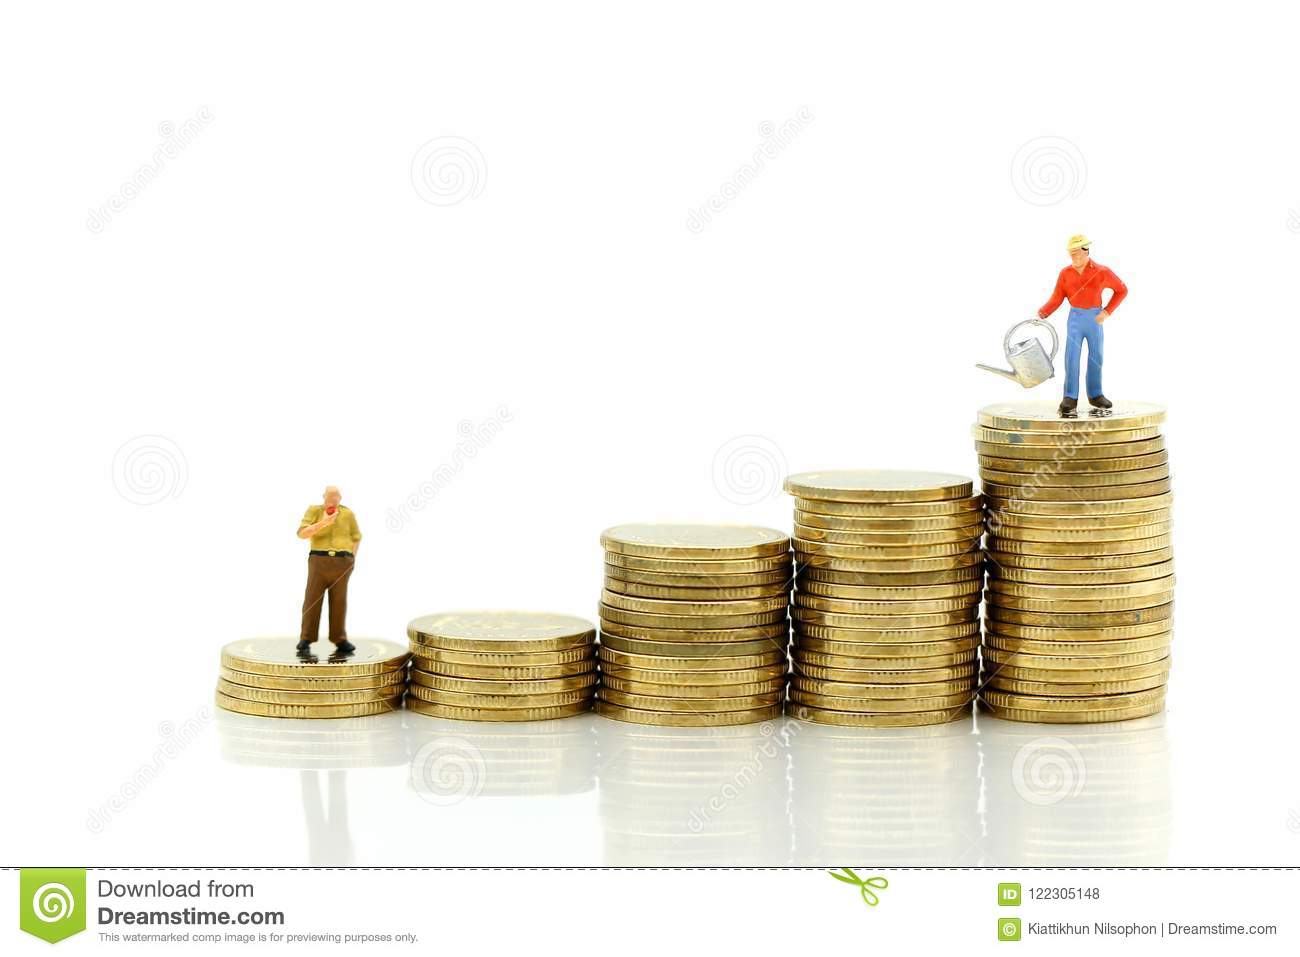 Miniature people : farmer stand on top of coins , Money, Financial, Business Growth concept.